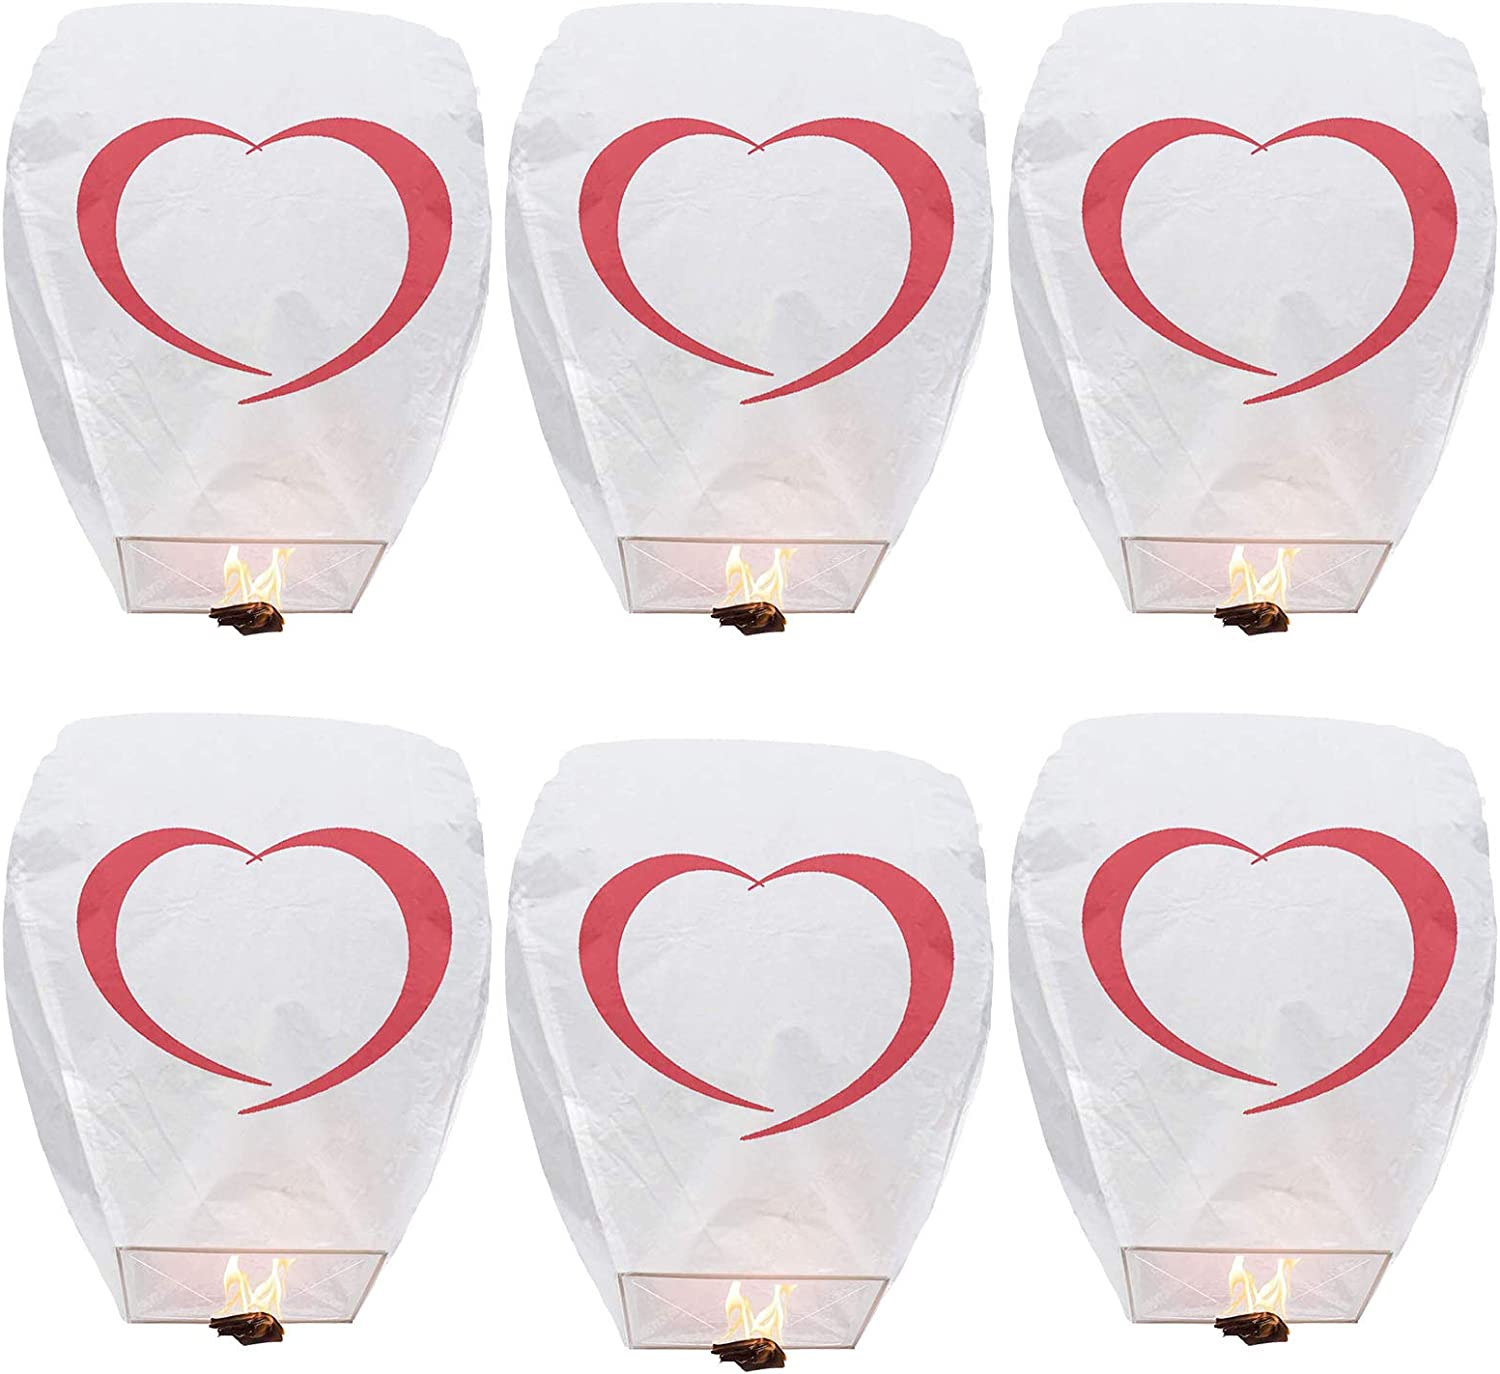 Sky Lanterns Floating Lantern No Assembly Required 100% Biodegradable Environmentally for Weddings, New Years, Festivals, Memorials & More (6-Pack)